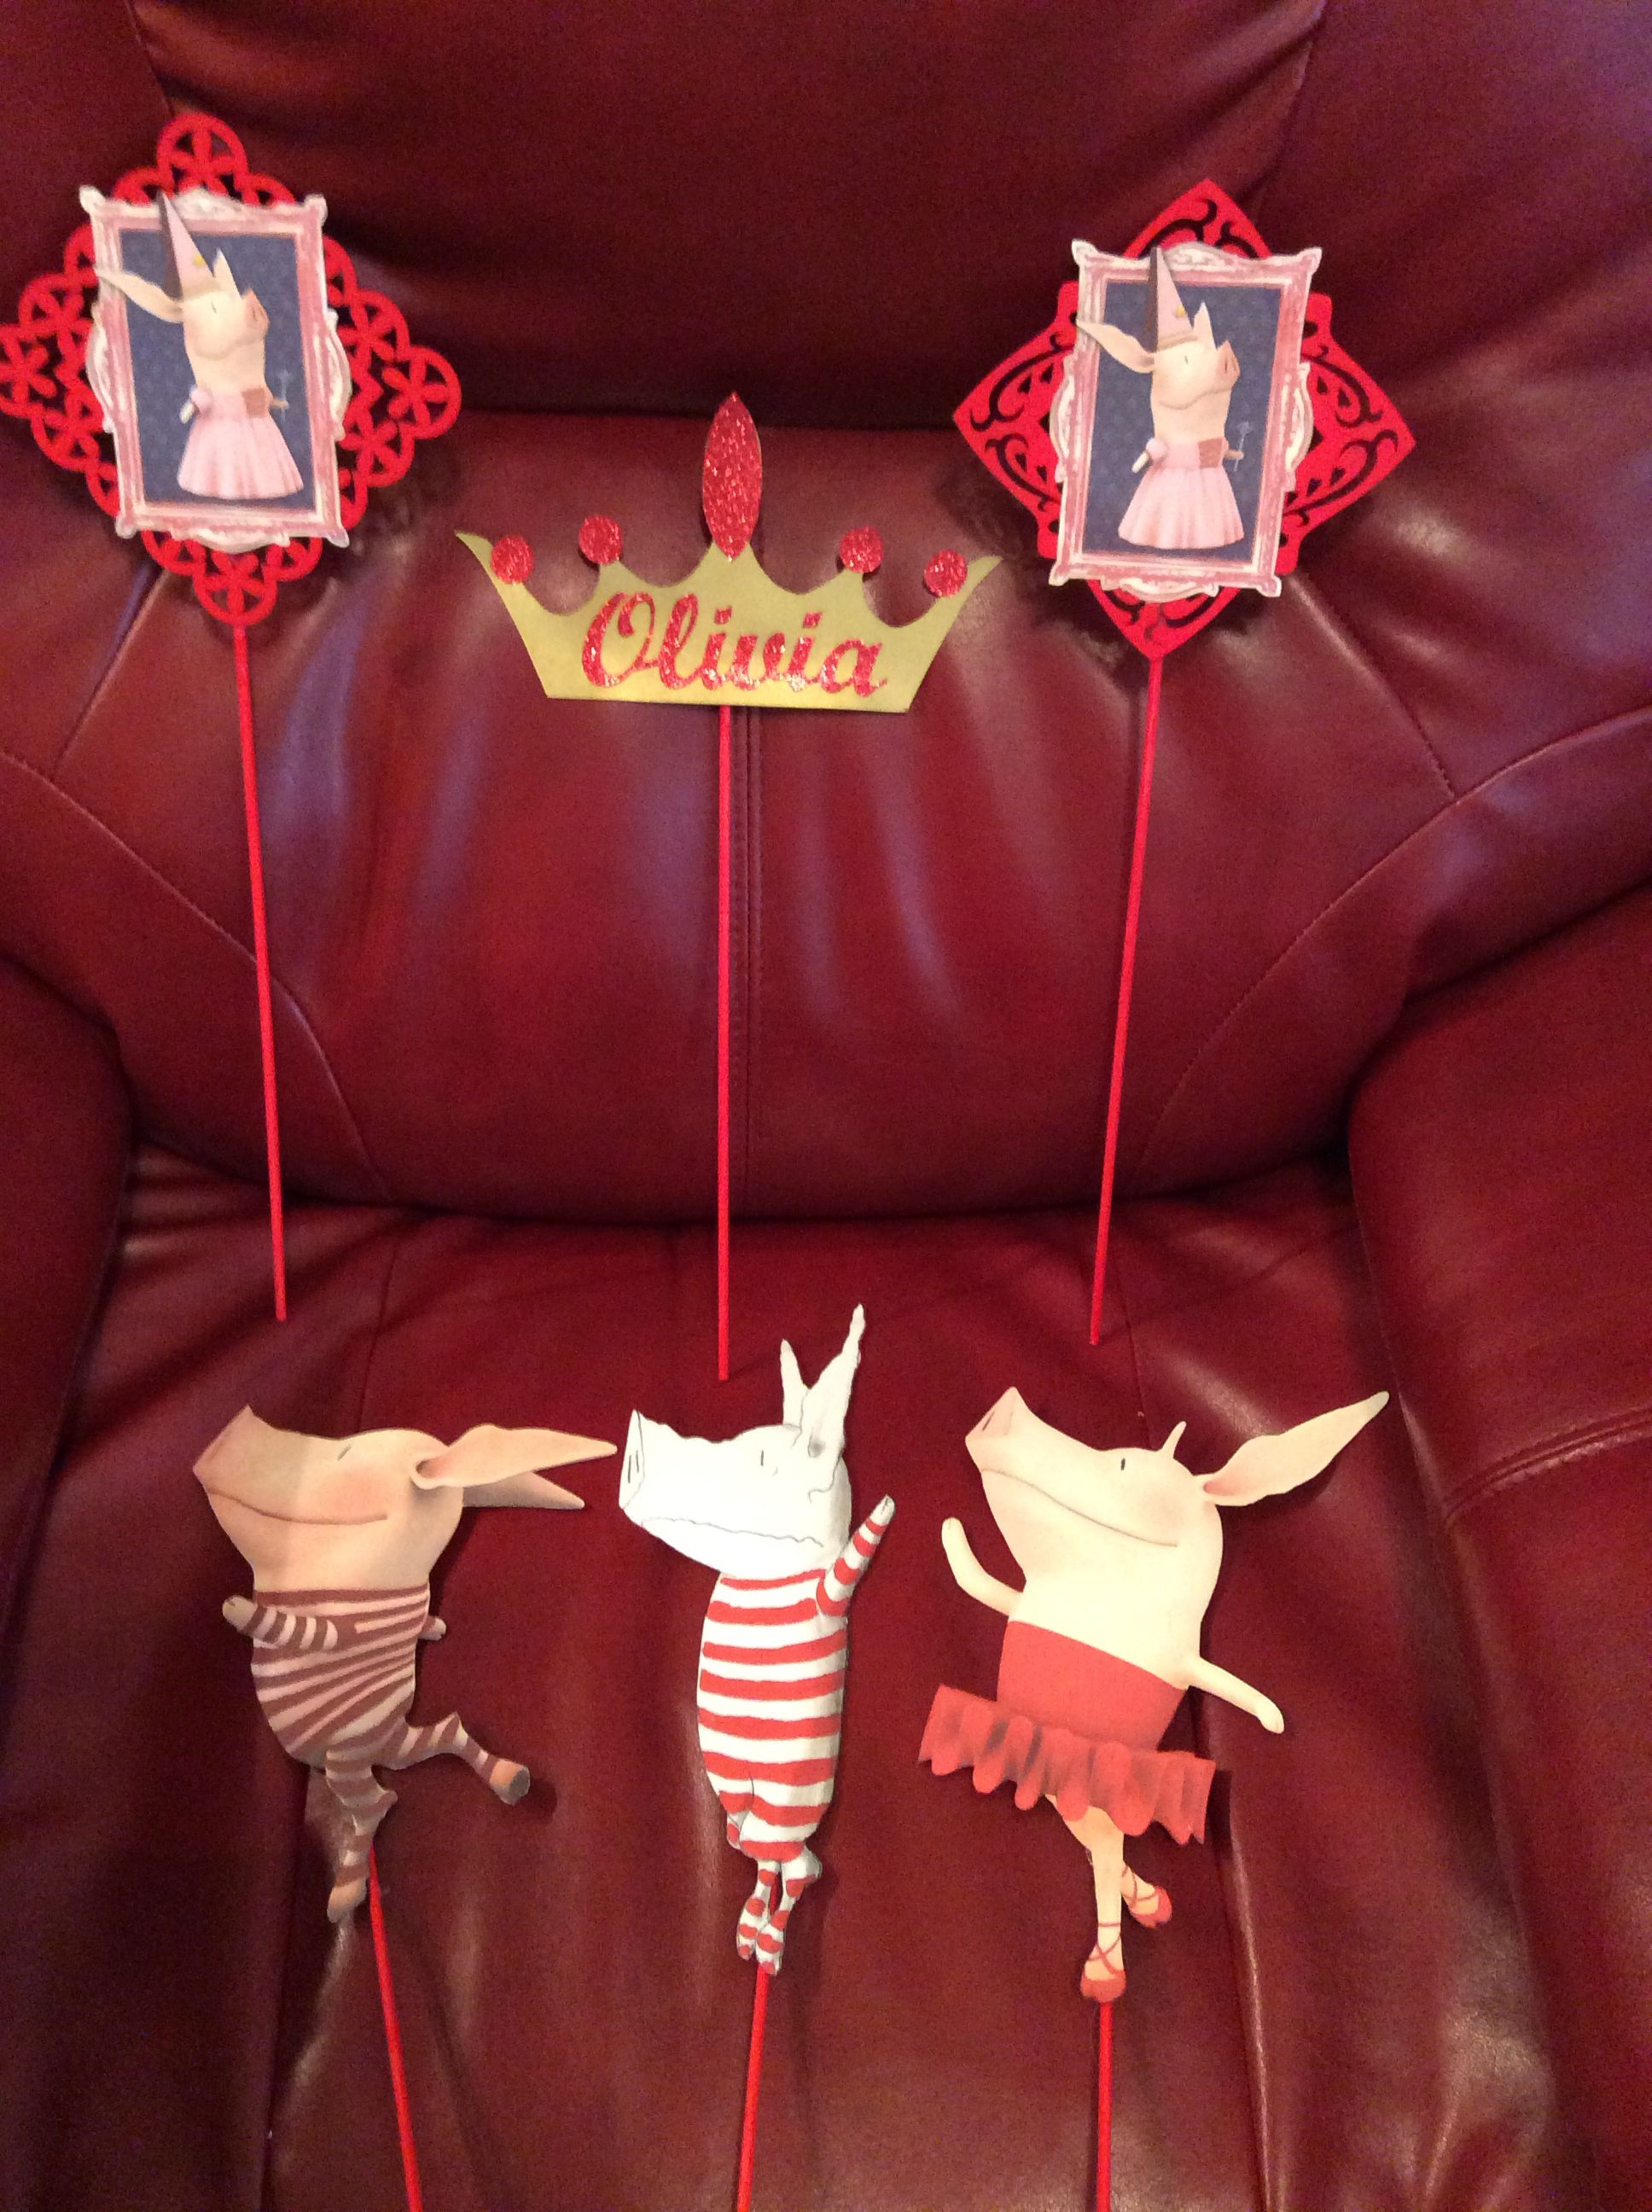 Olivia The Pig Props For A Center Piece